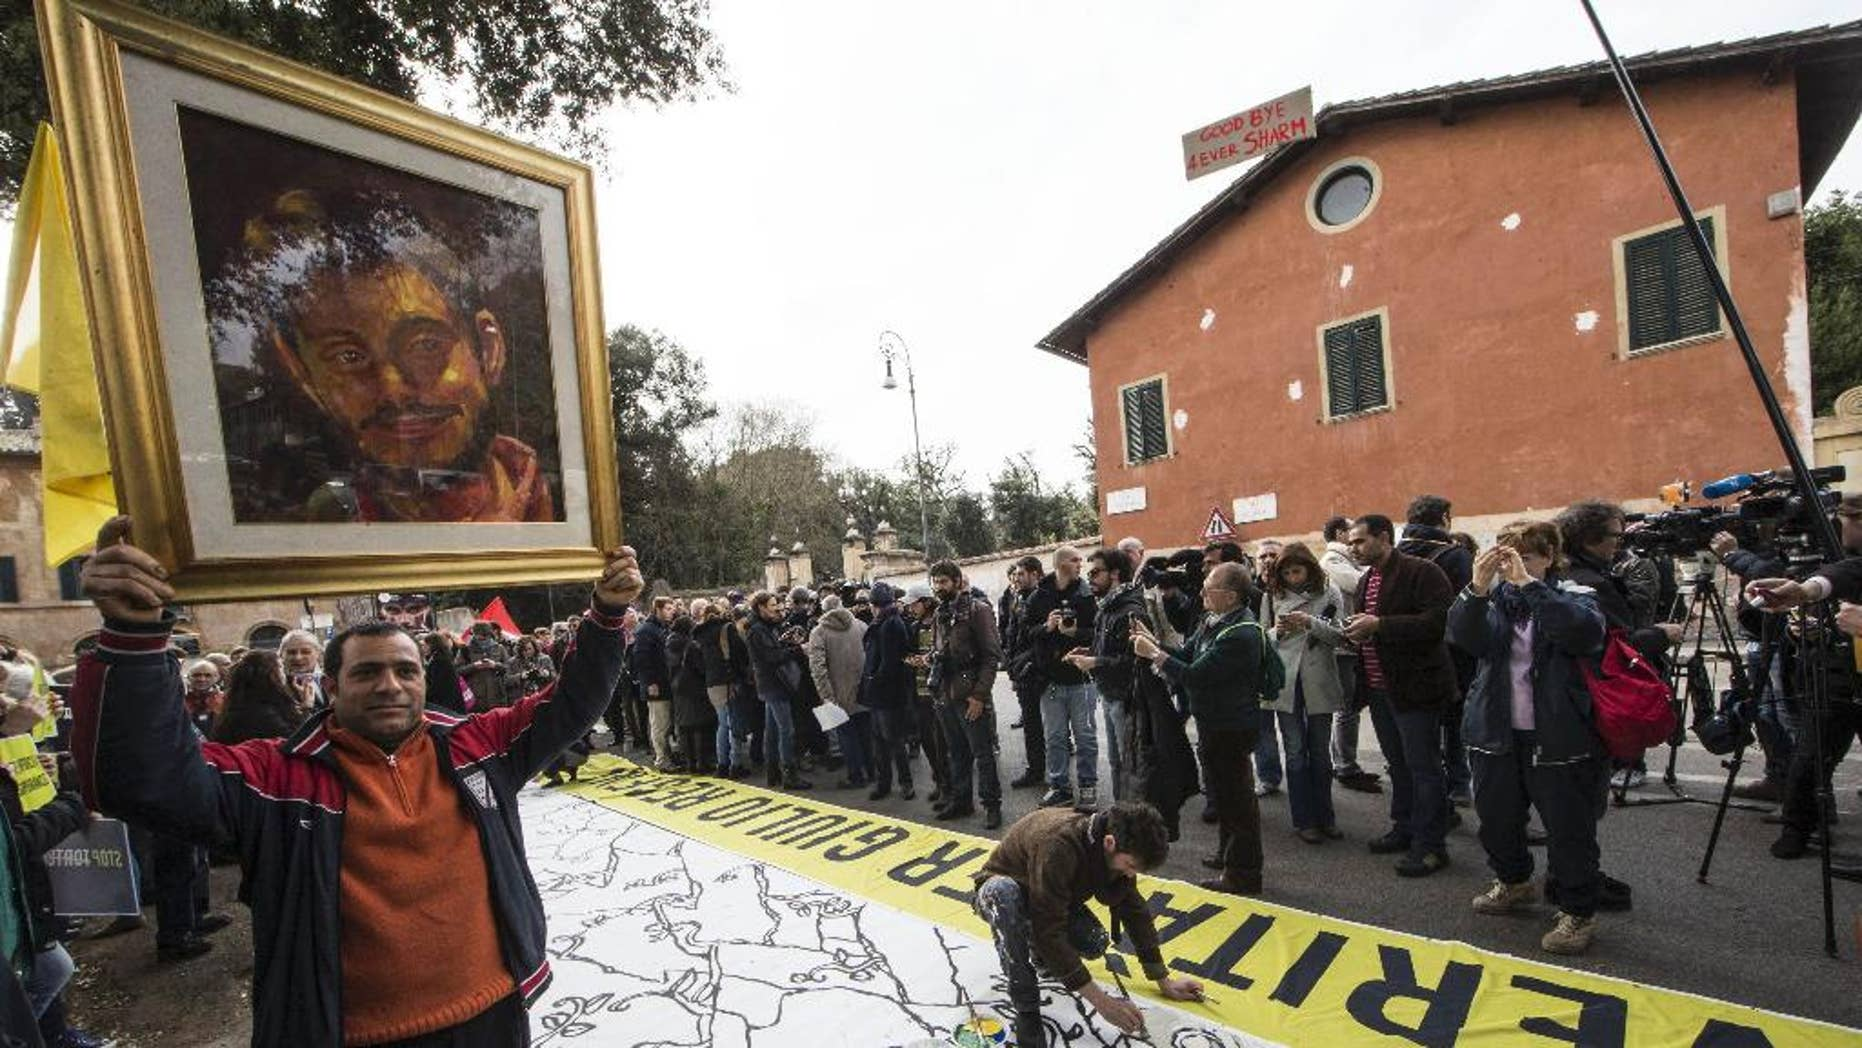 FILE - In this Feb. 25, 2016 file photo, a man holds up a portrait of Giulio Regeni, the Italian student slained in Cairo, as several dozen people stage a sit-in outside Egypt's embassy in Rome. Egypt's chief prosecutor has told Italian authorities Cairo police investigated an Italian researcher weeks before the young man was found tortured to death in the Egyptian capital, according to a statement Friday, Sept. 9, 2016 from both sides. (Massimo Percossi/ANSA via AP, File)